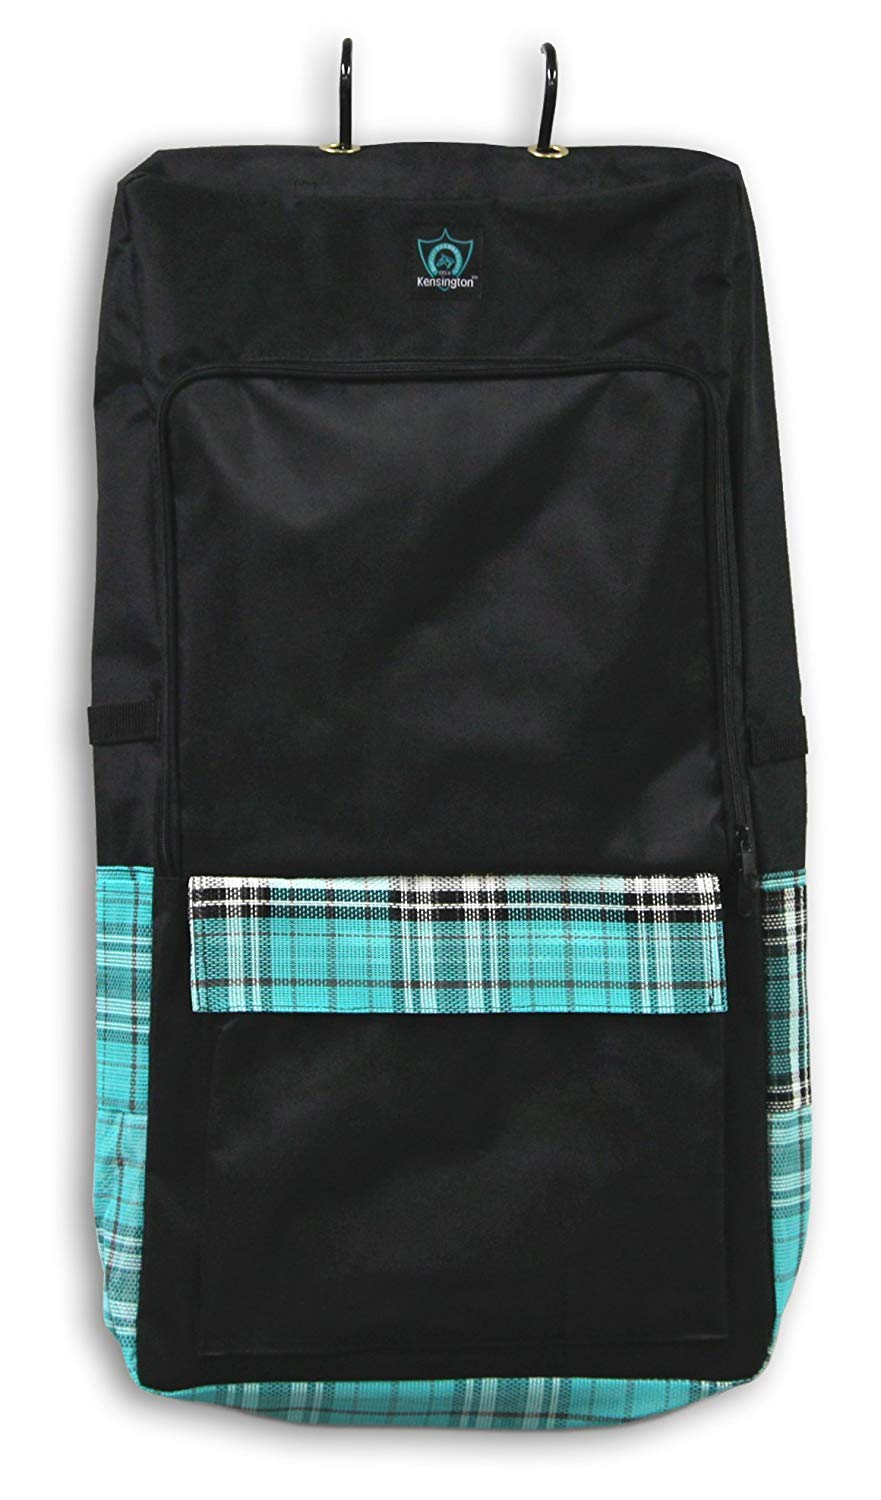 Kensington Protective Products Deluxe Halter and Bridle Bag (Black Ice Plaid) by Kensington Protective Products